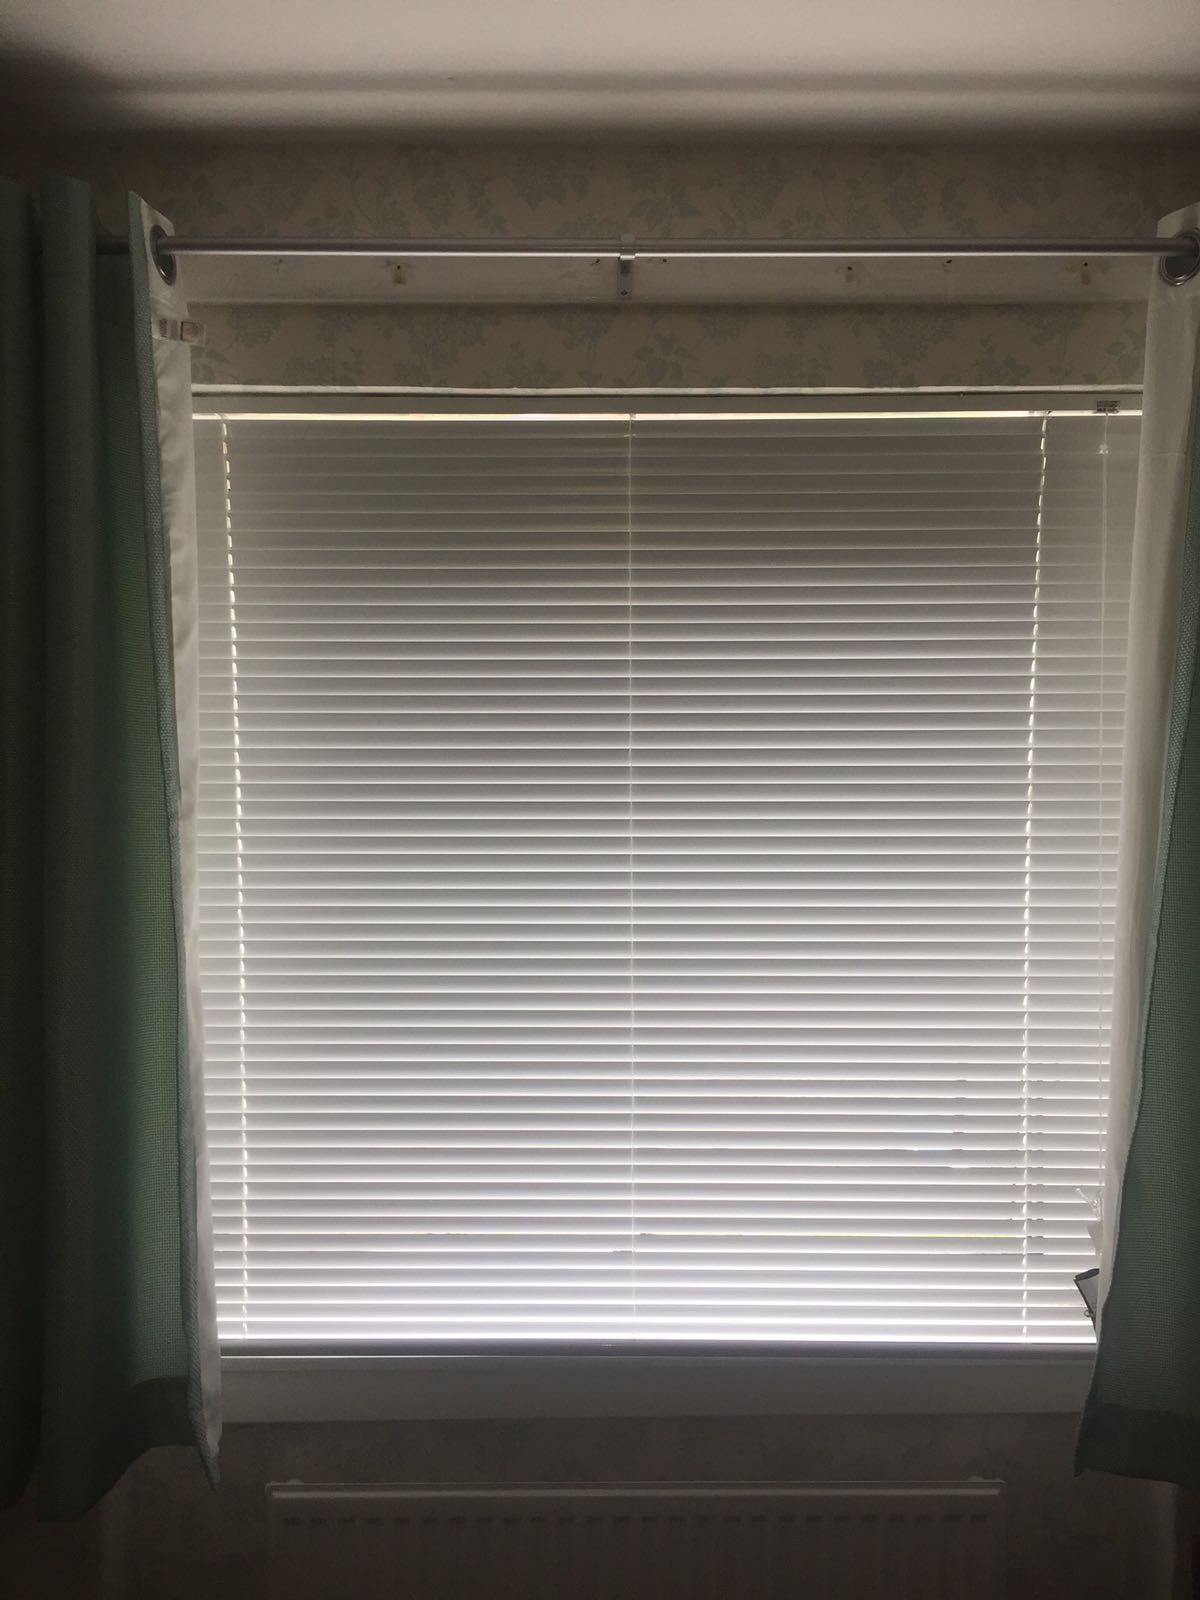 White 25mm Metal Venetian blind